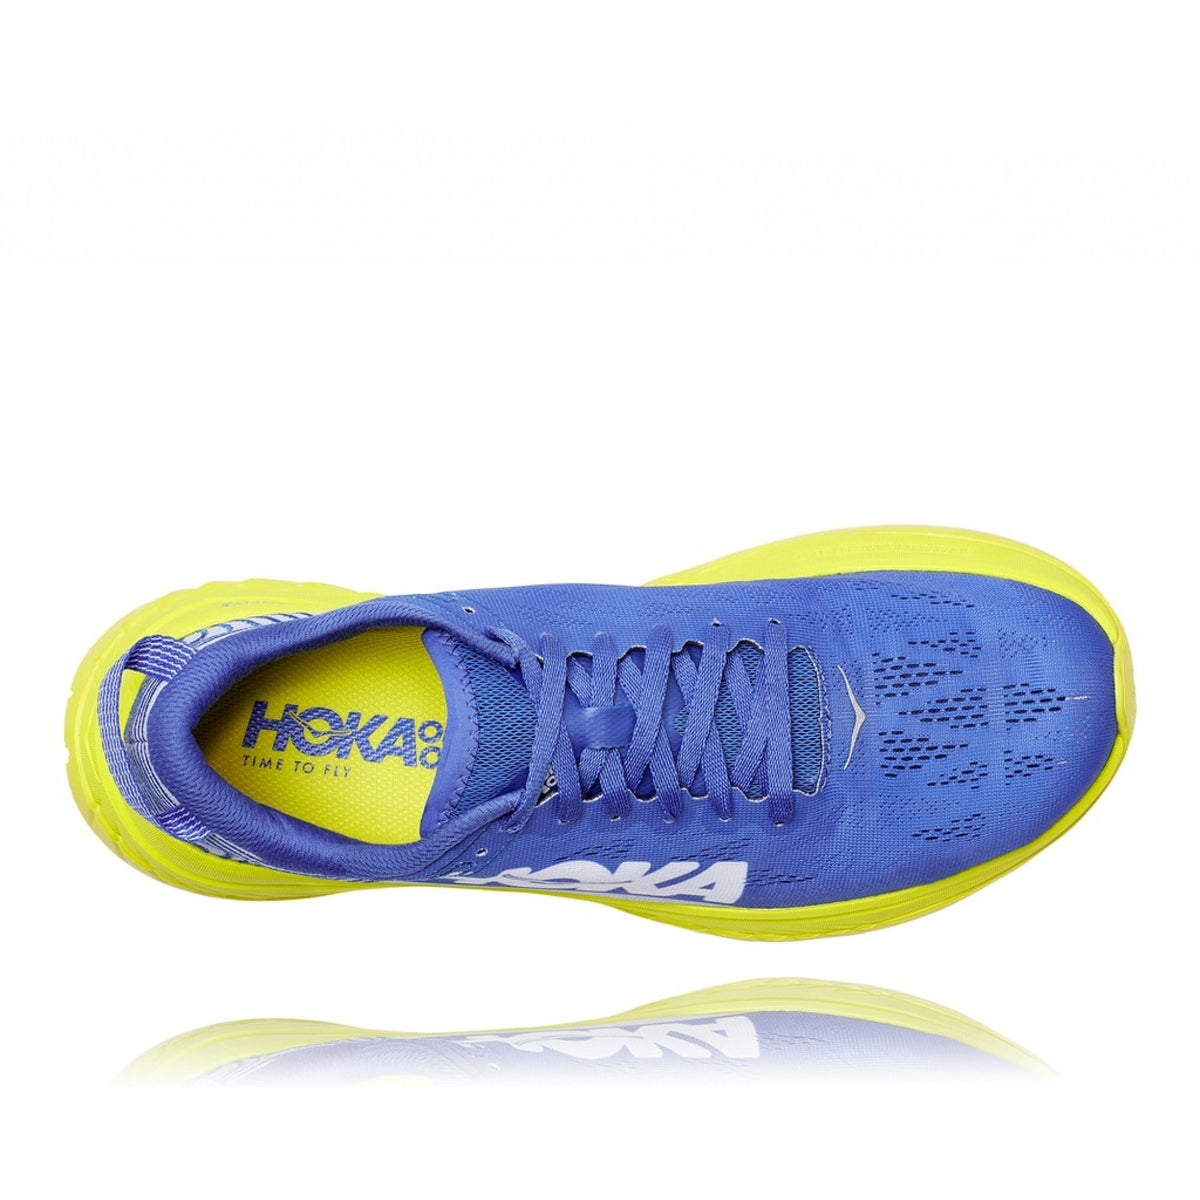 Hoka One One Carbon X Womens